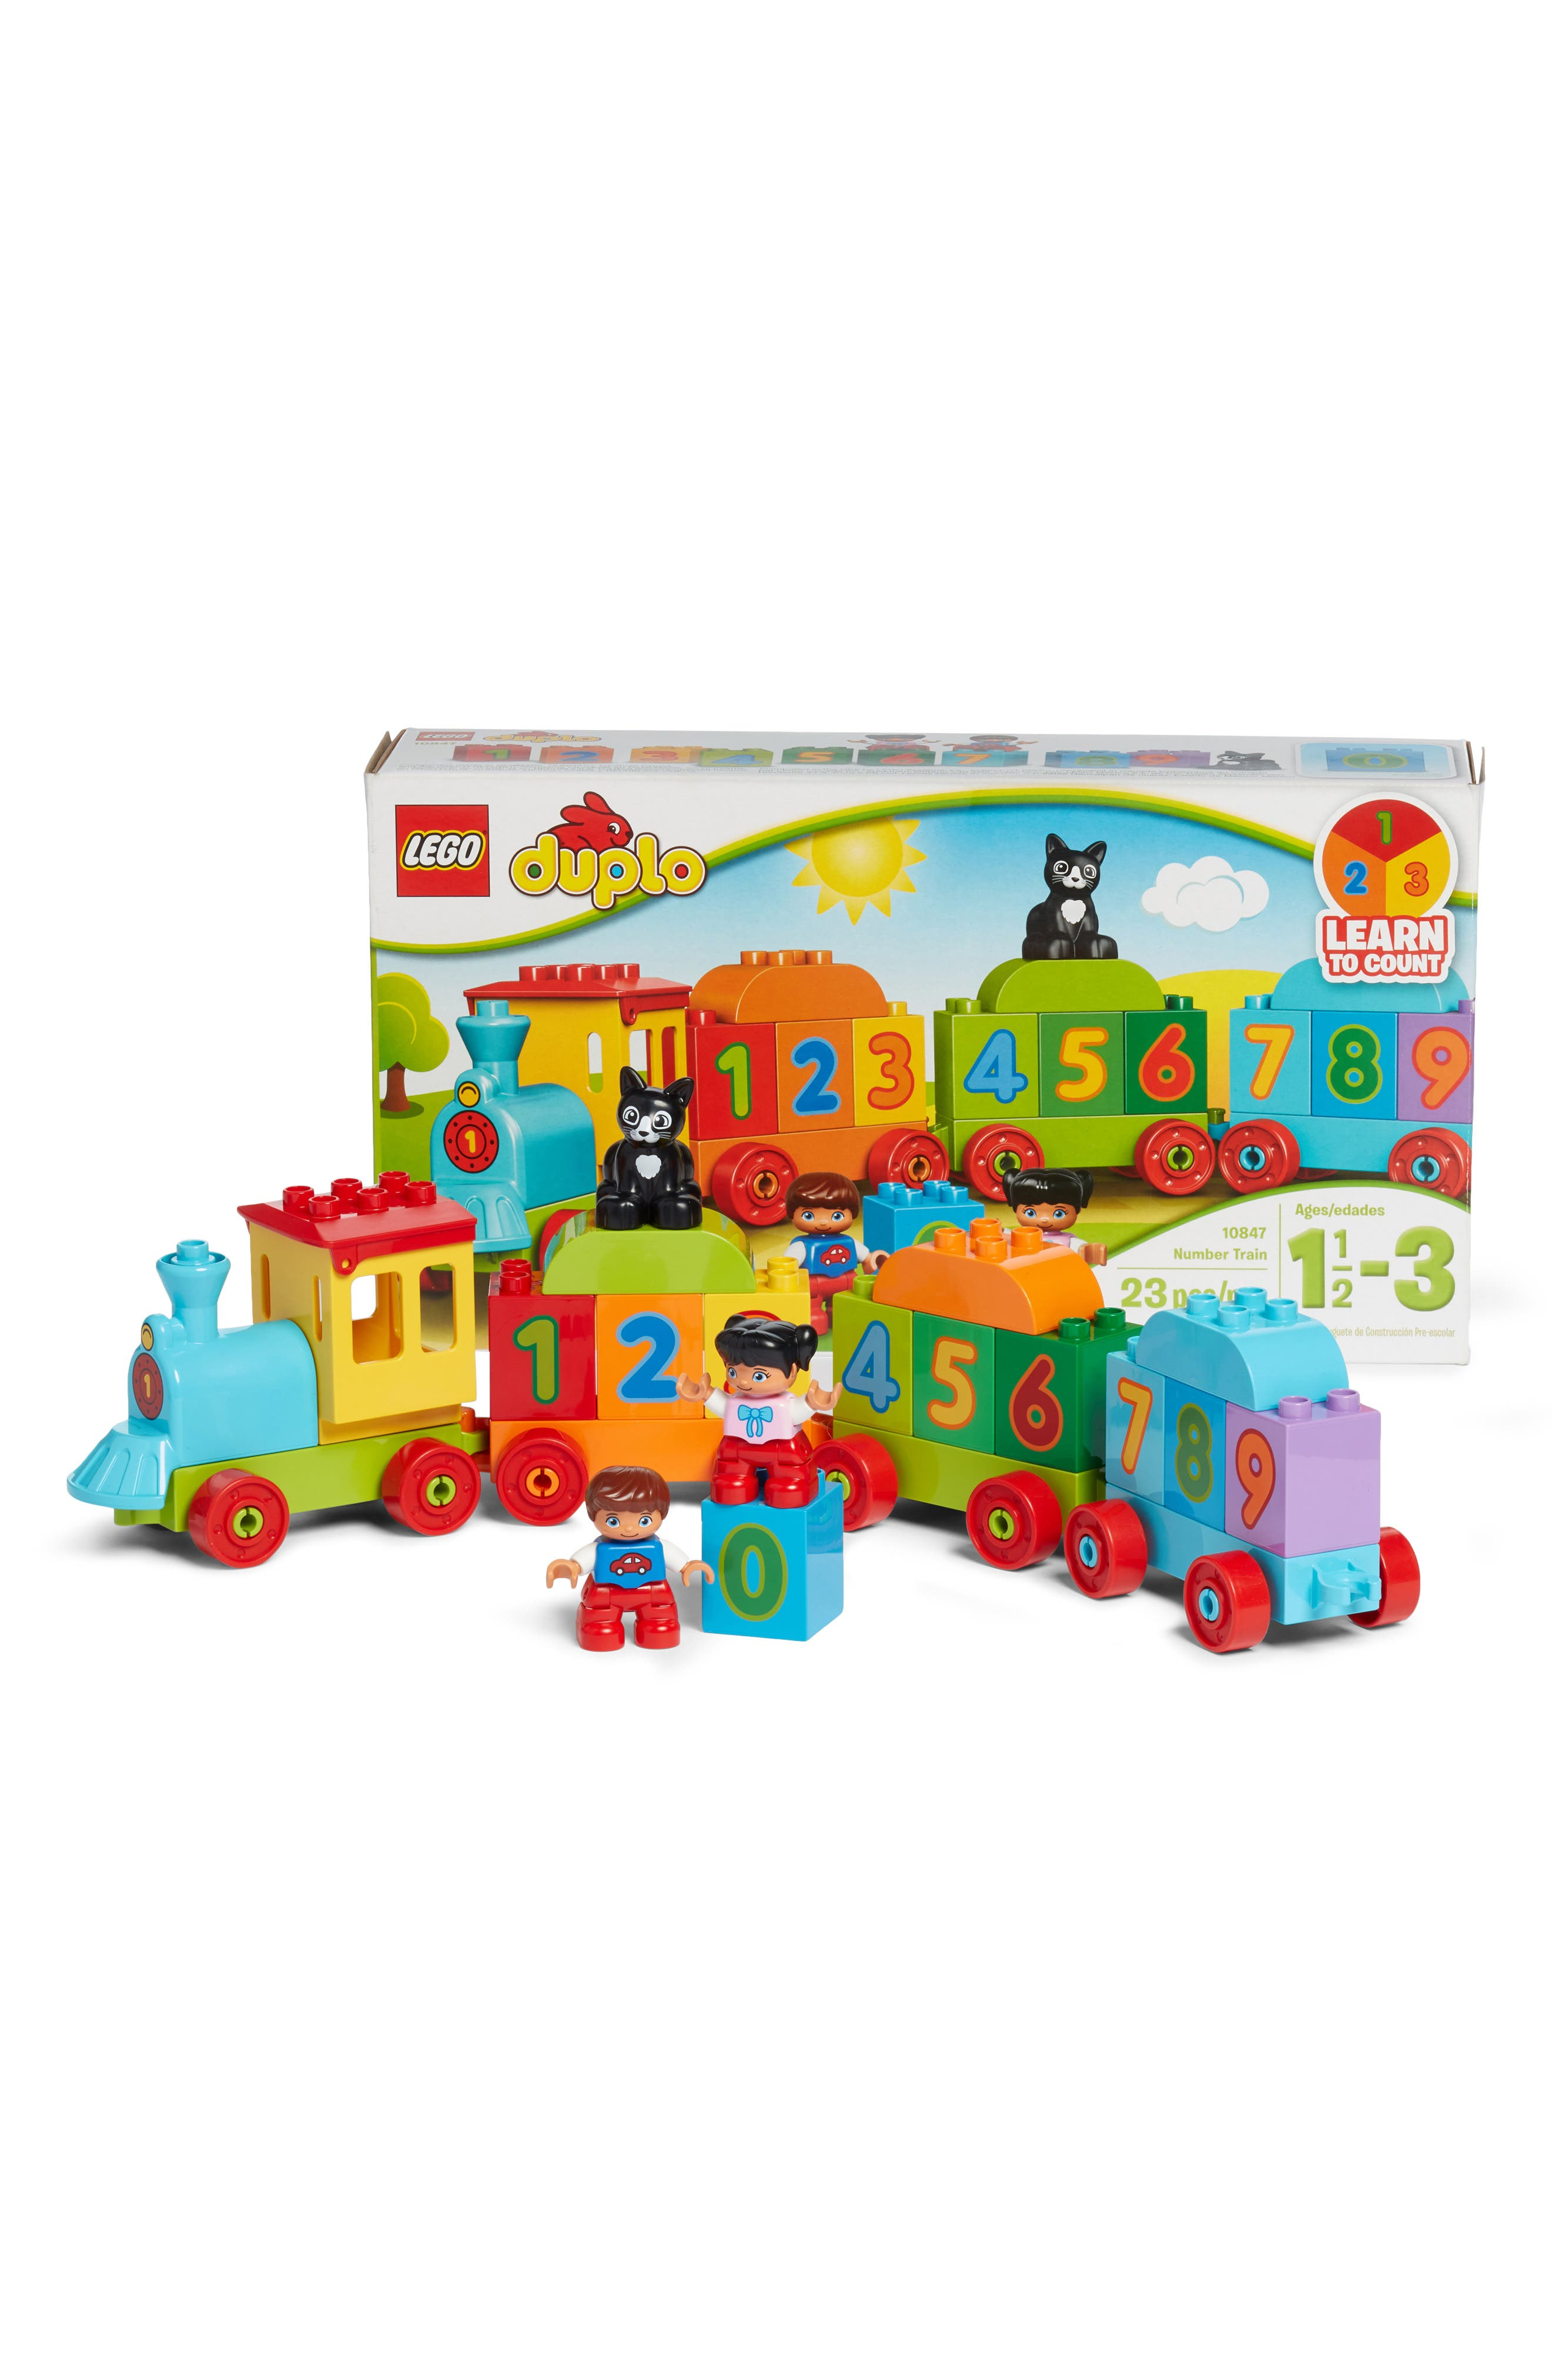 DUPLO<sup>®</sup> Number Train - 10847,                             Alternate thumbnail 2, color,                             300